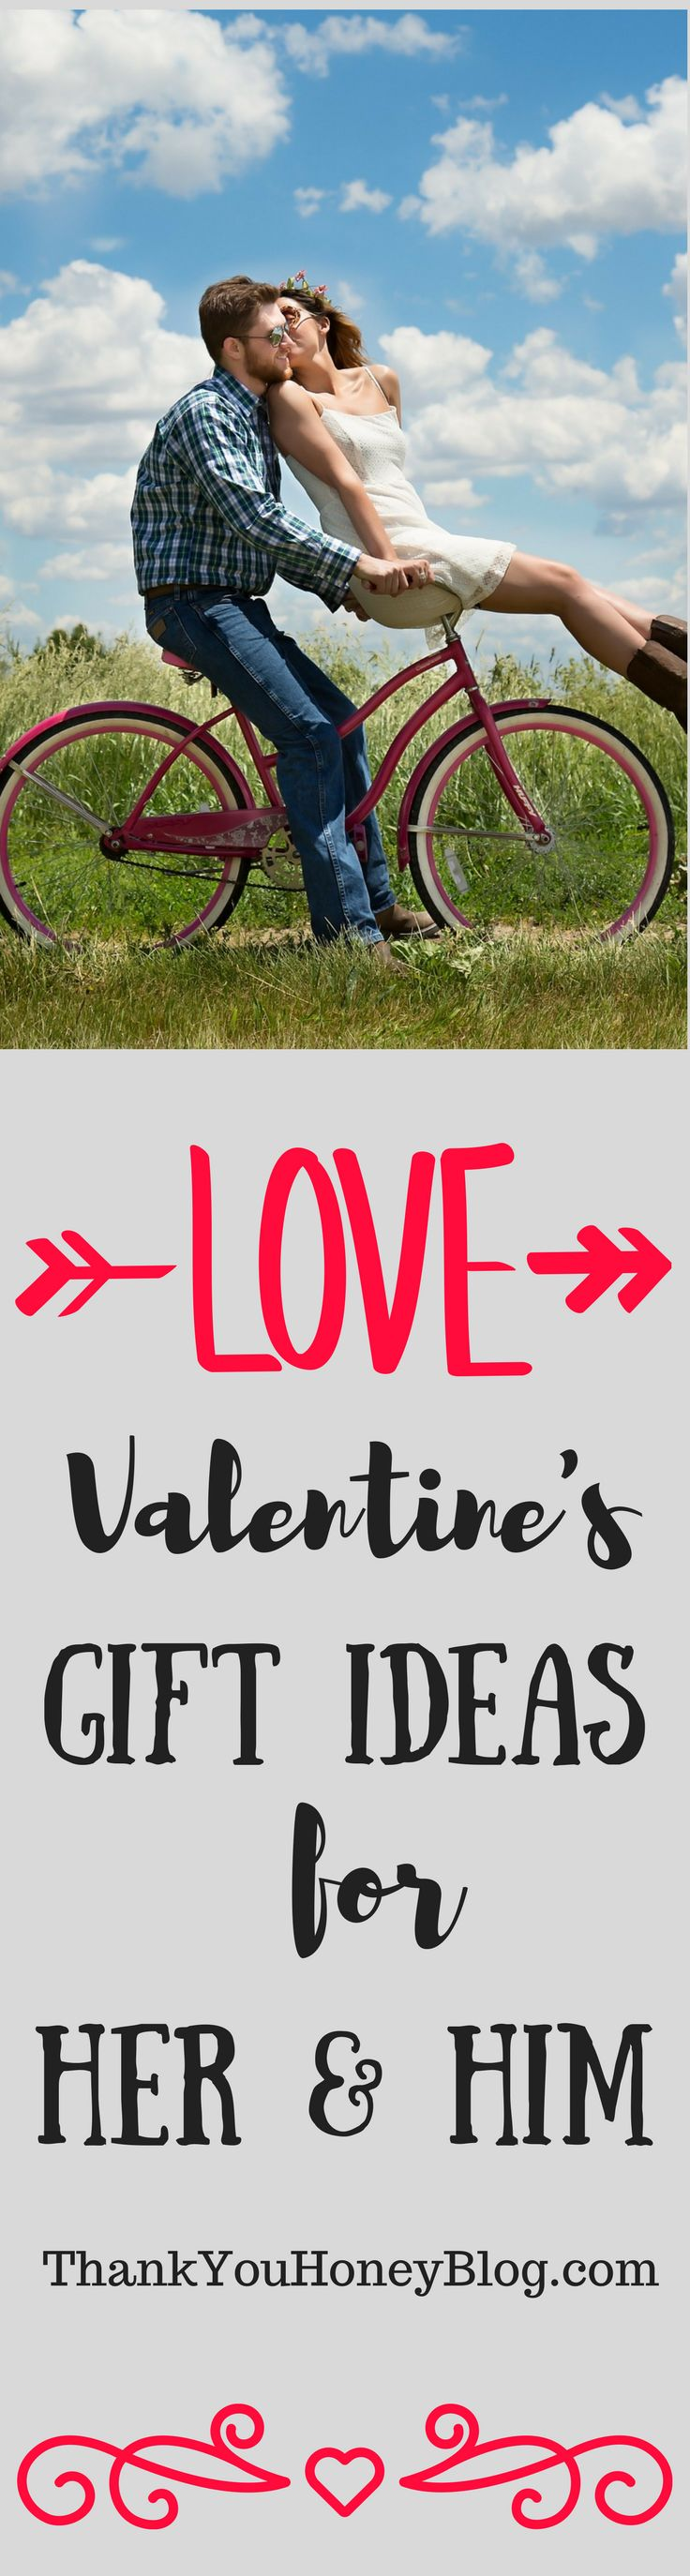 Valentine's Gift Ideas for Her & Him! Check out this gift guide for your Valentine! #giftidea #valentinesday #giftsforher #giftforhim #giftguide